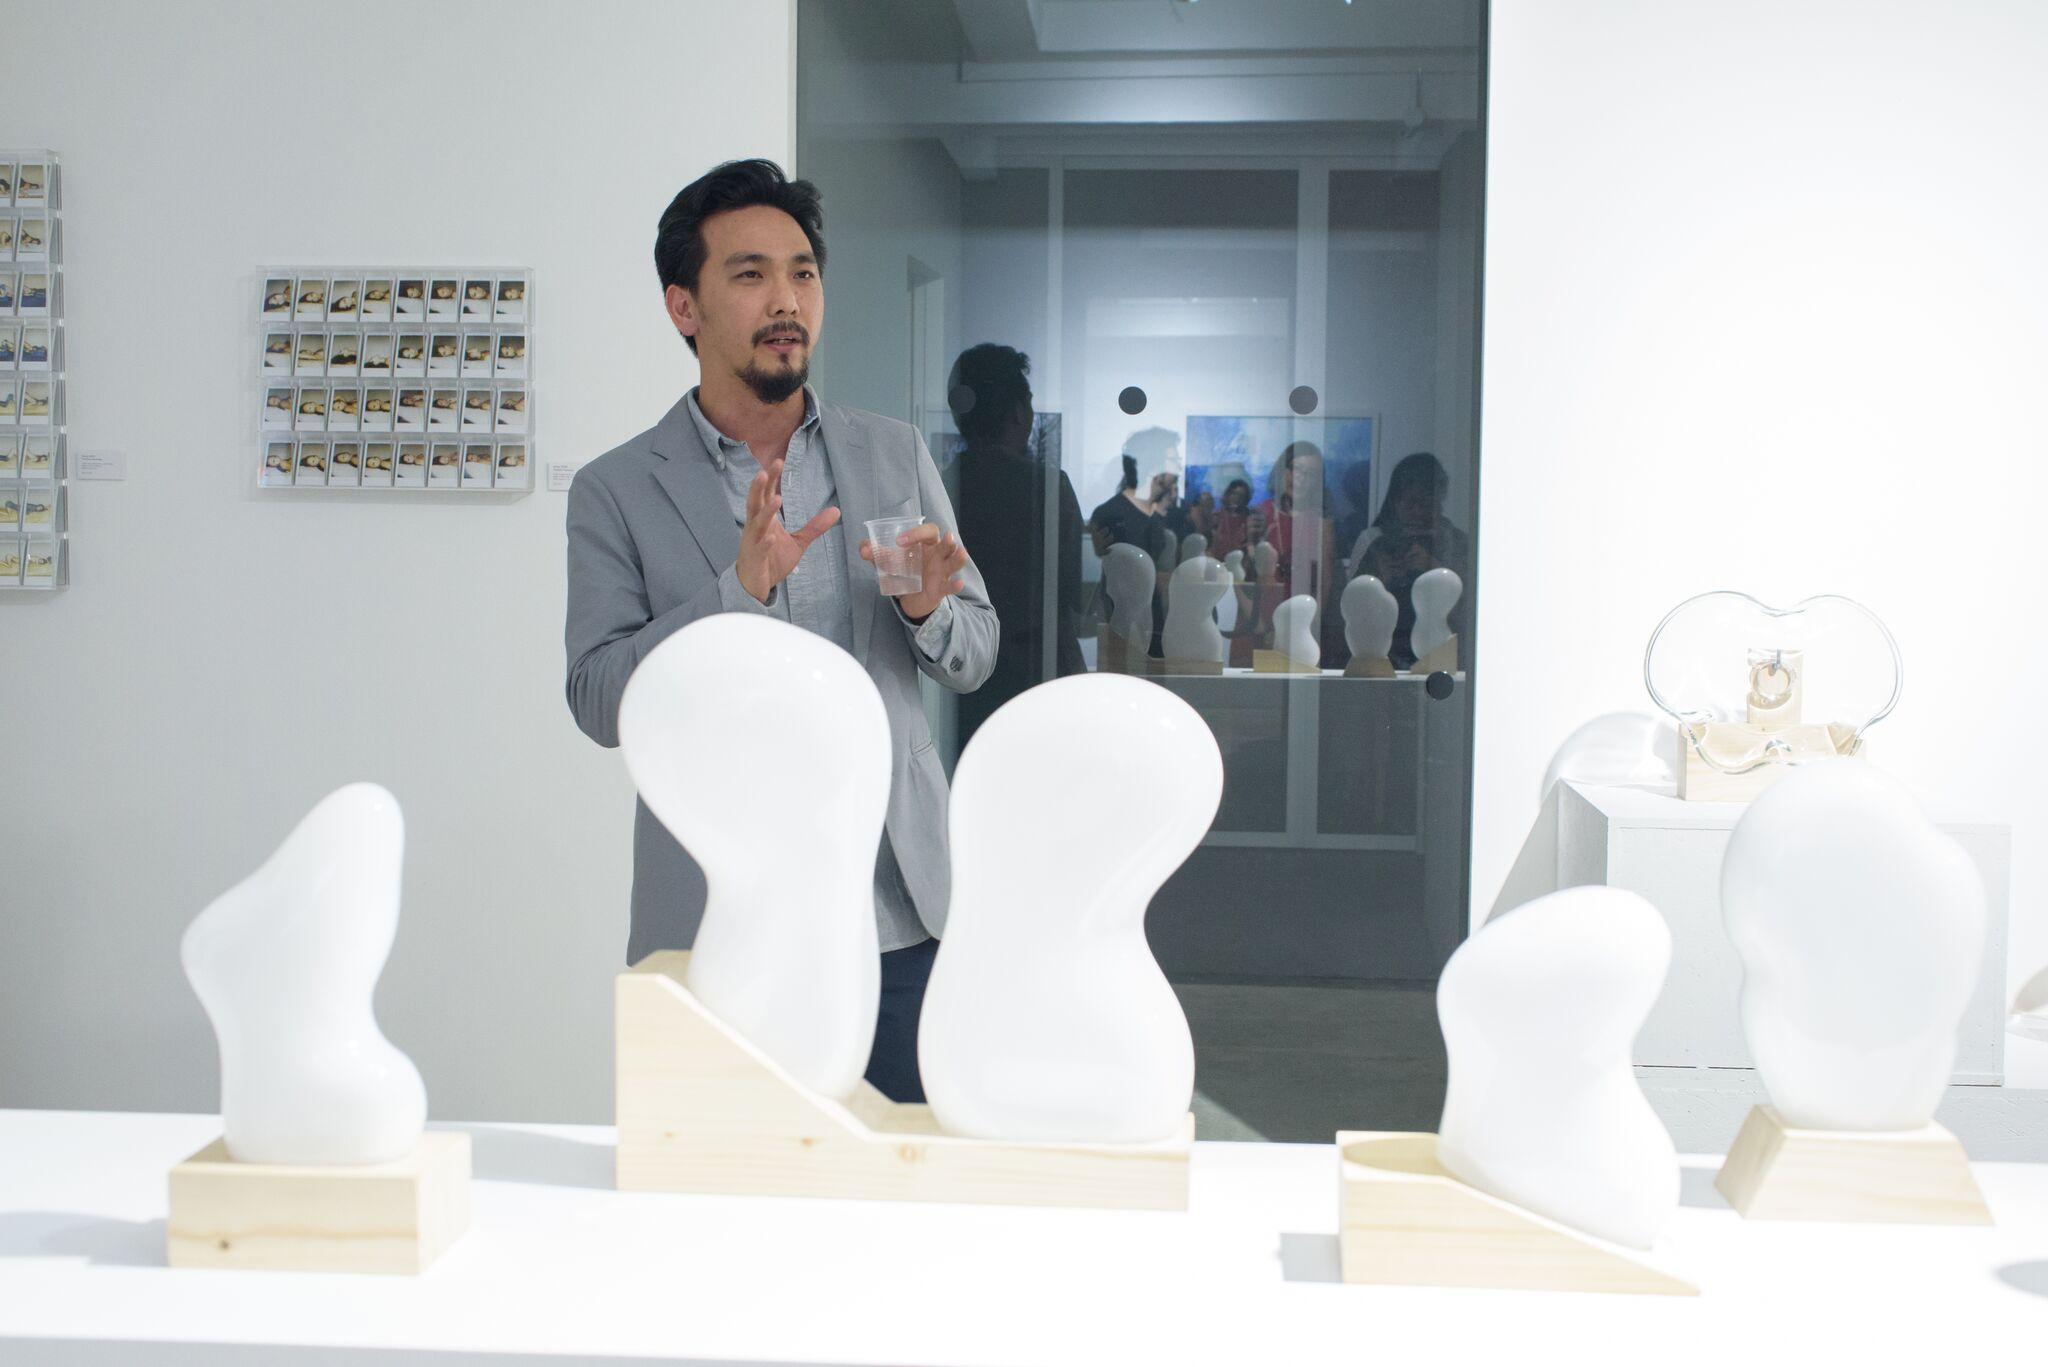 """From the Spektacularis exhibition, """"Studio Glass: Method in the Madness"""" presented by Industry+ at their gallery for Singapore Art Week last January."""